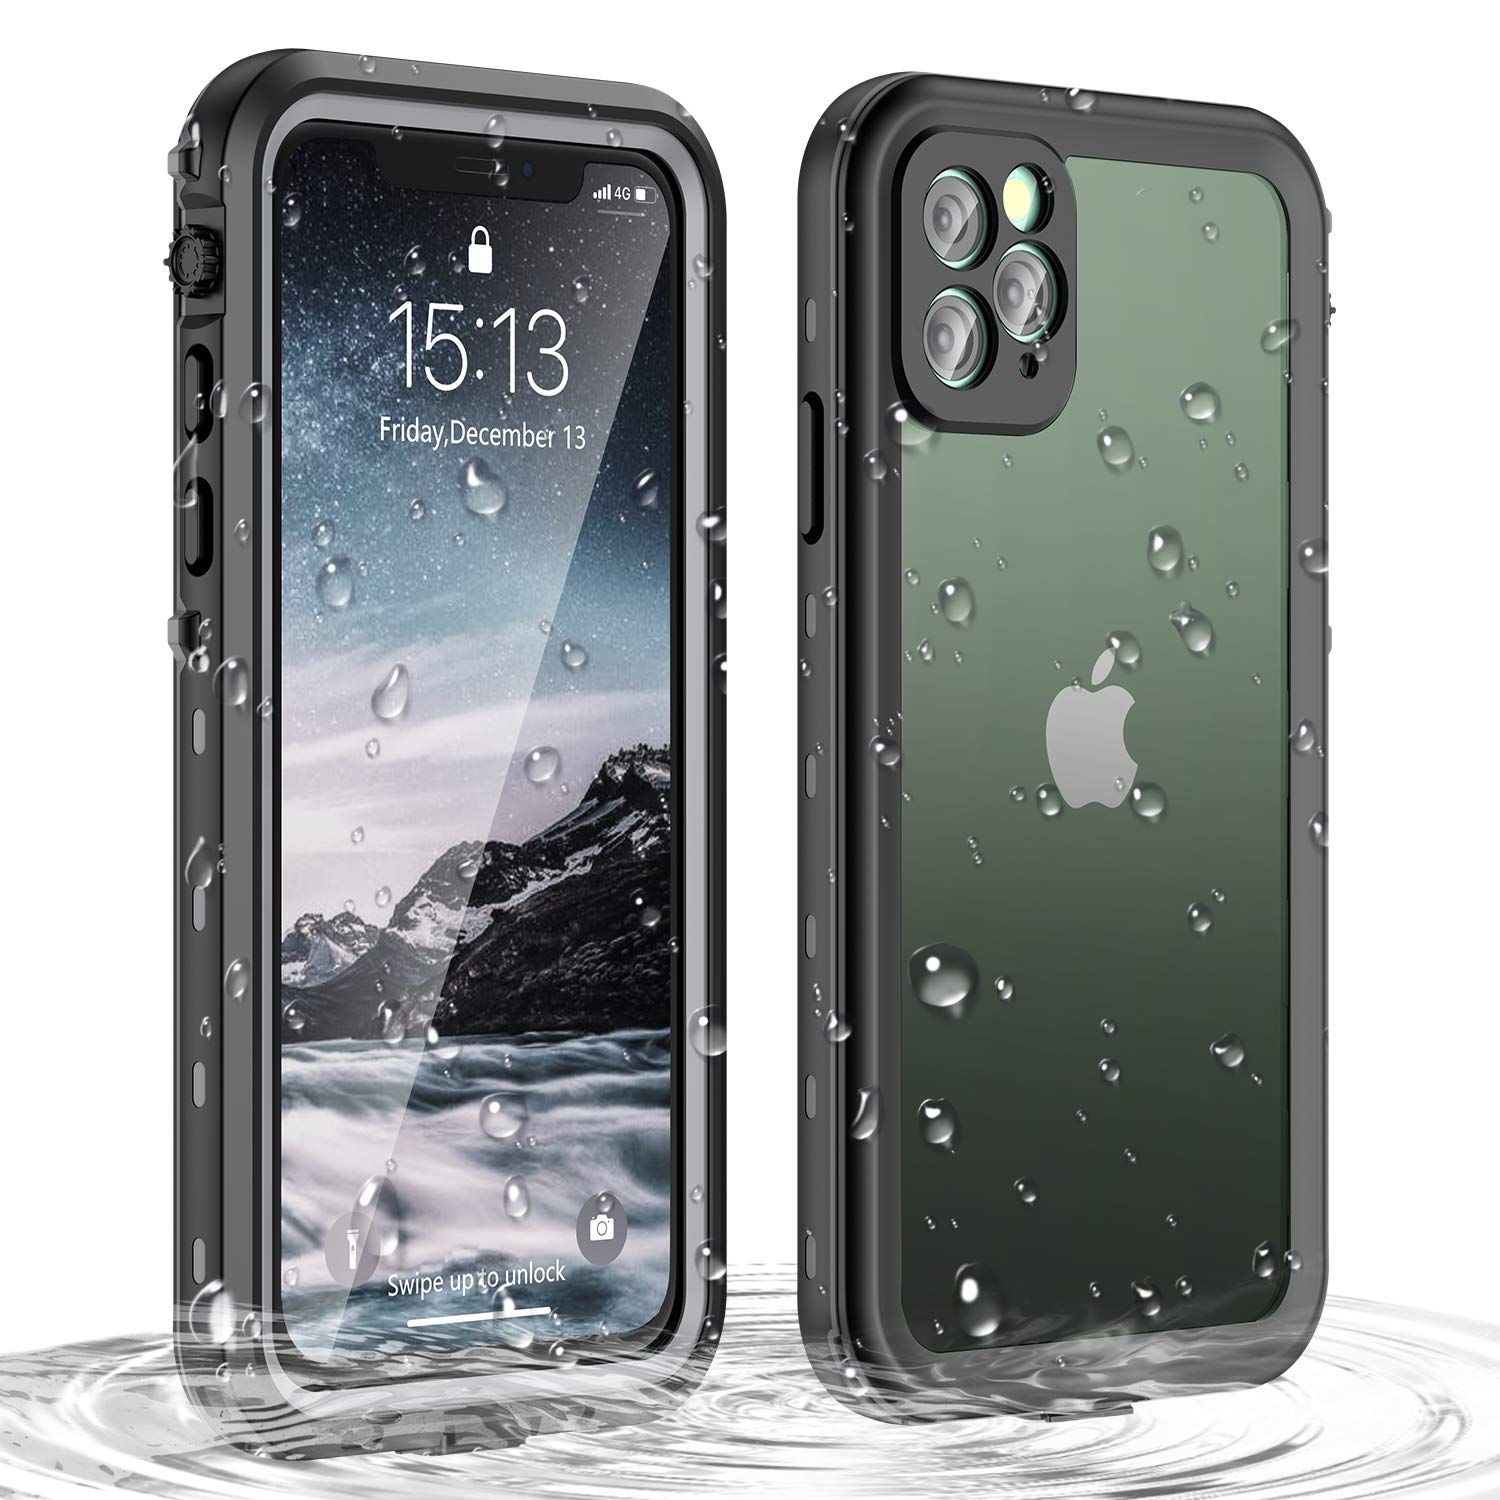 Janazan iPhone 11 Pro Max Waterproof Case, 360 Full Body Clear Protective Case with Built-in Screen Protector, Waterproof Shockproof Snowproof Dirtproof for iPhone 11 Pro Max 6.5 inch 2019 (Black)